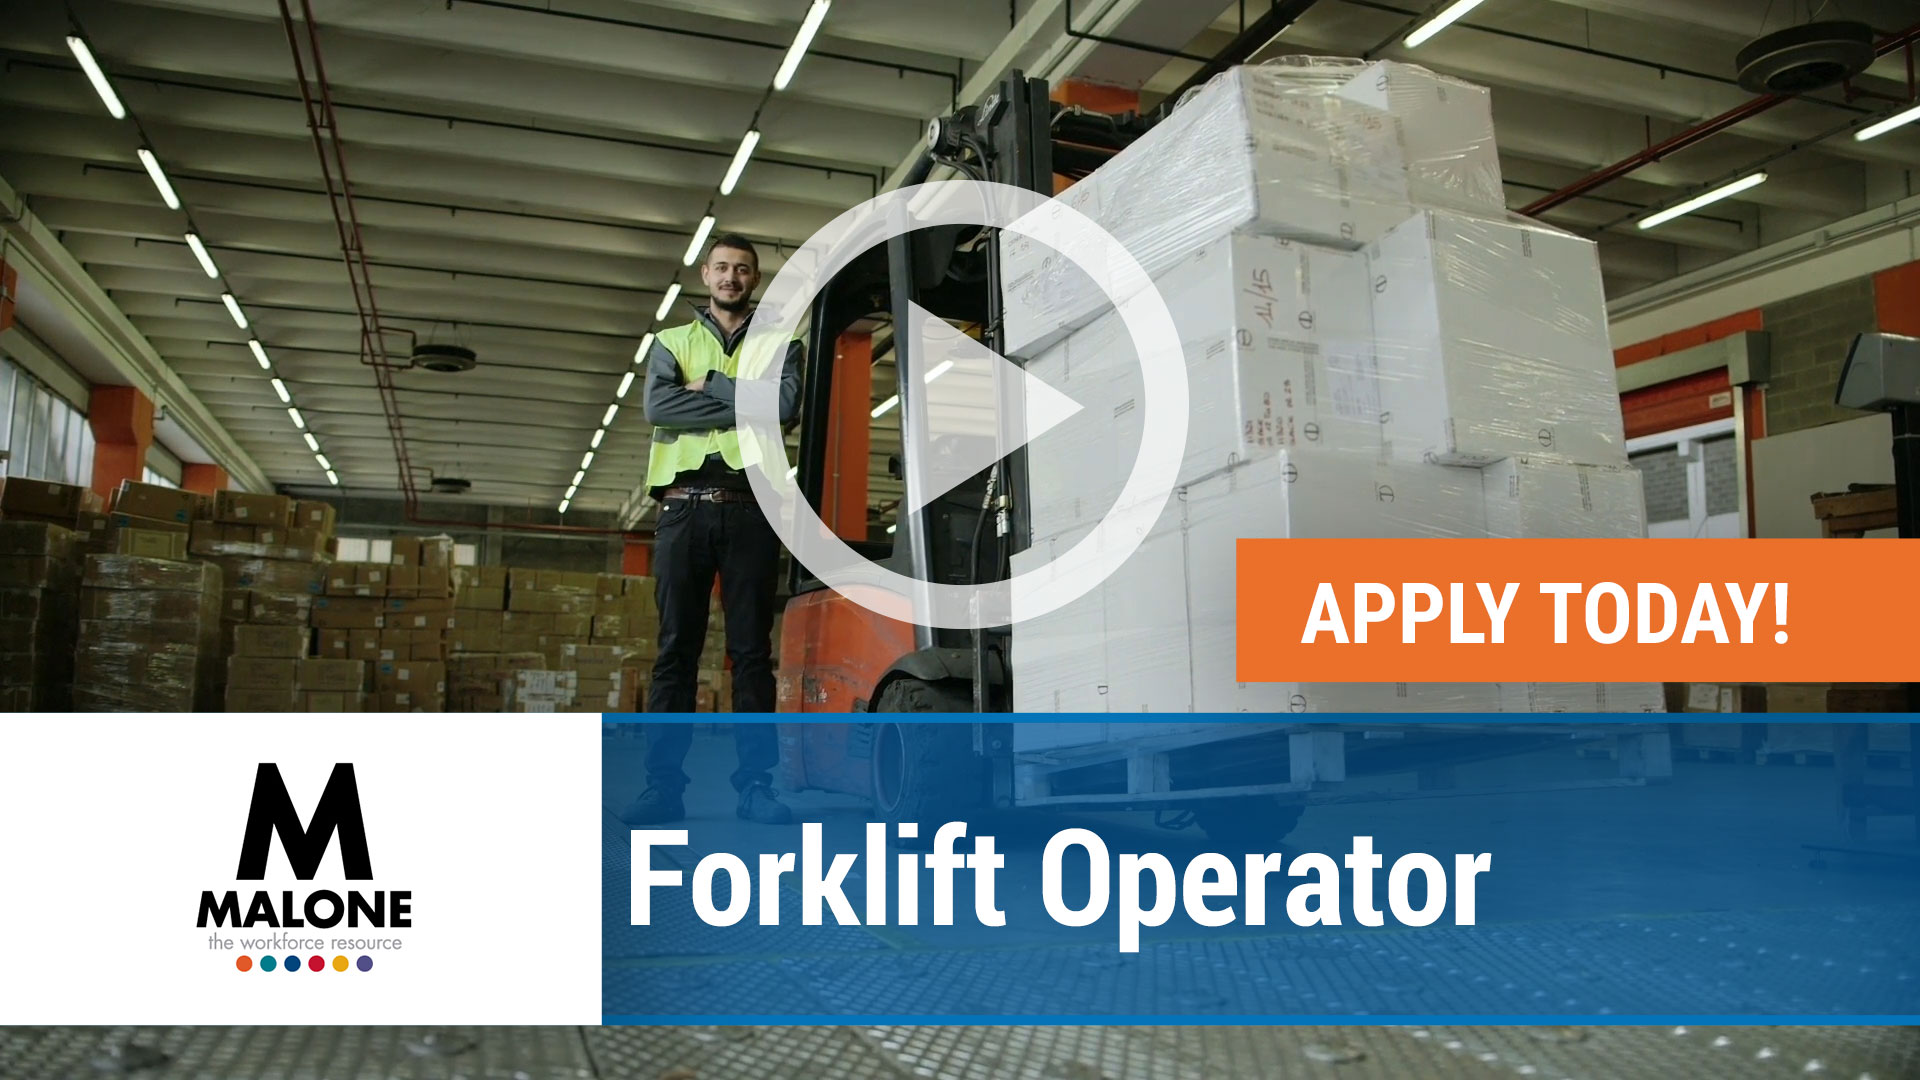 Watch our careers video for available job opening Forklift Operator in West Point, Georgia